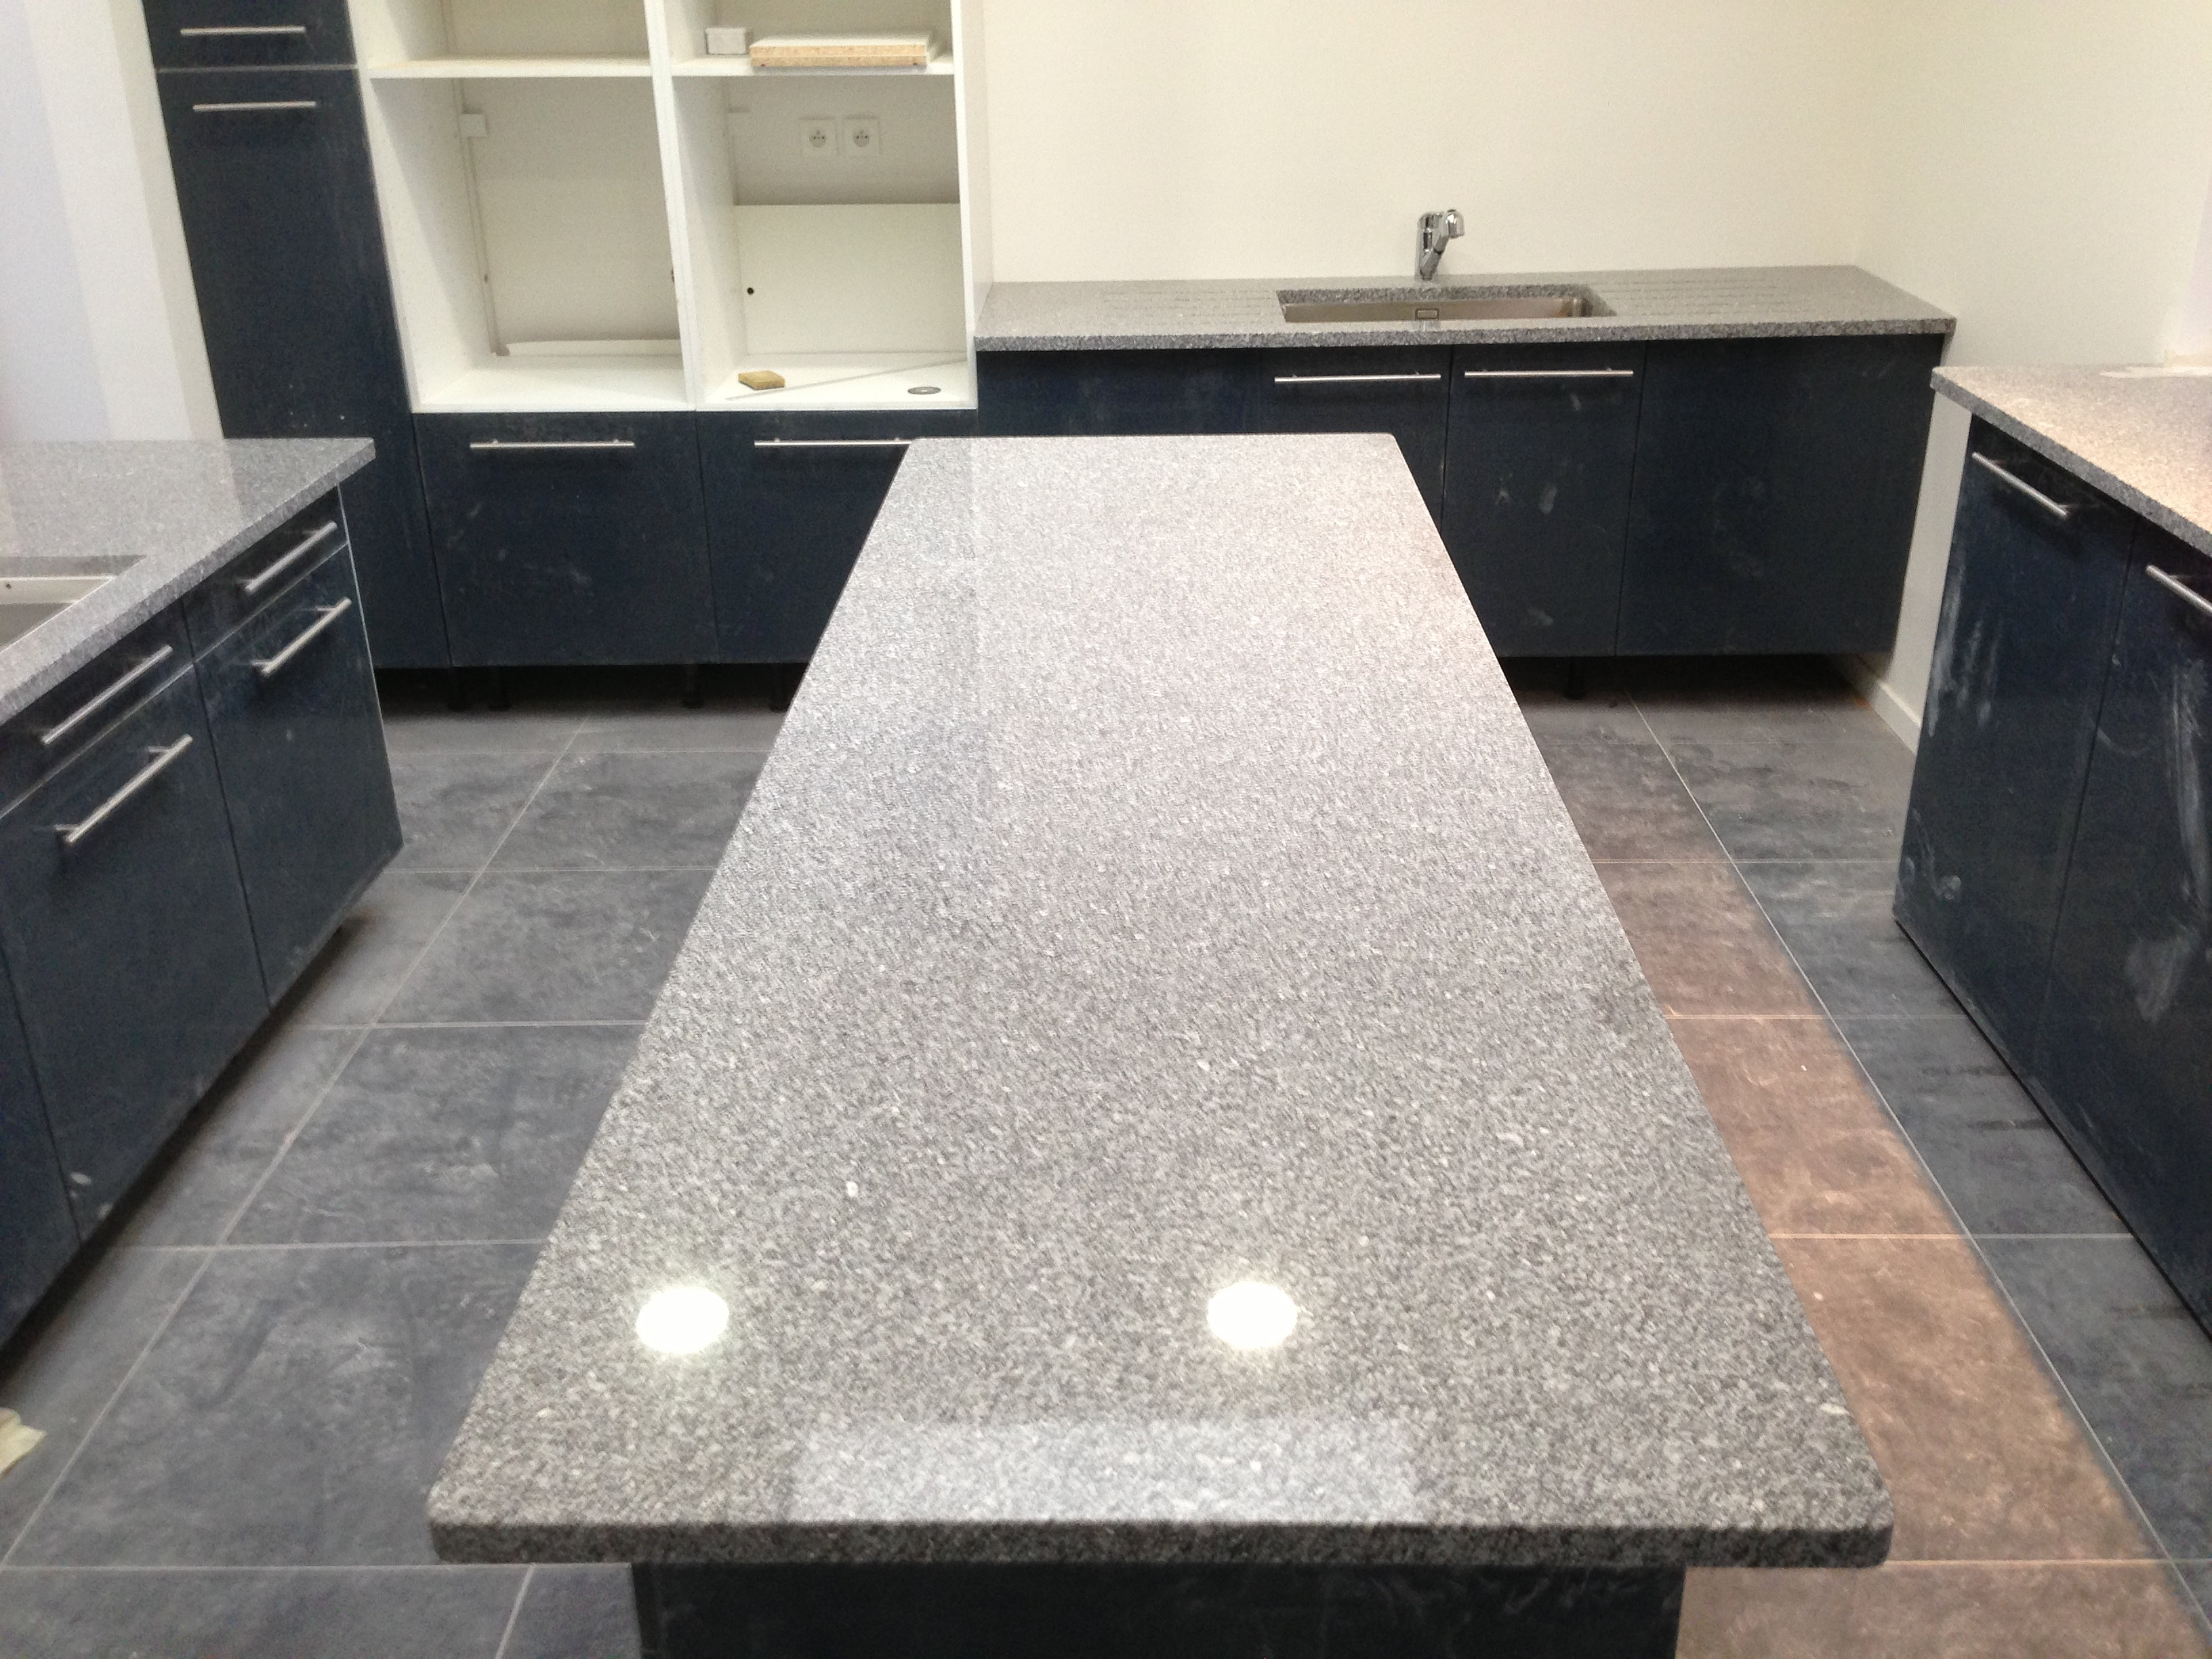 Plan de travail granit quartz table en mabre paris for Plan de travail colore